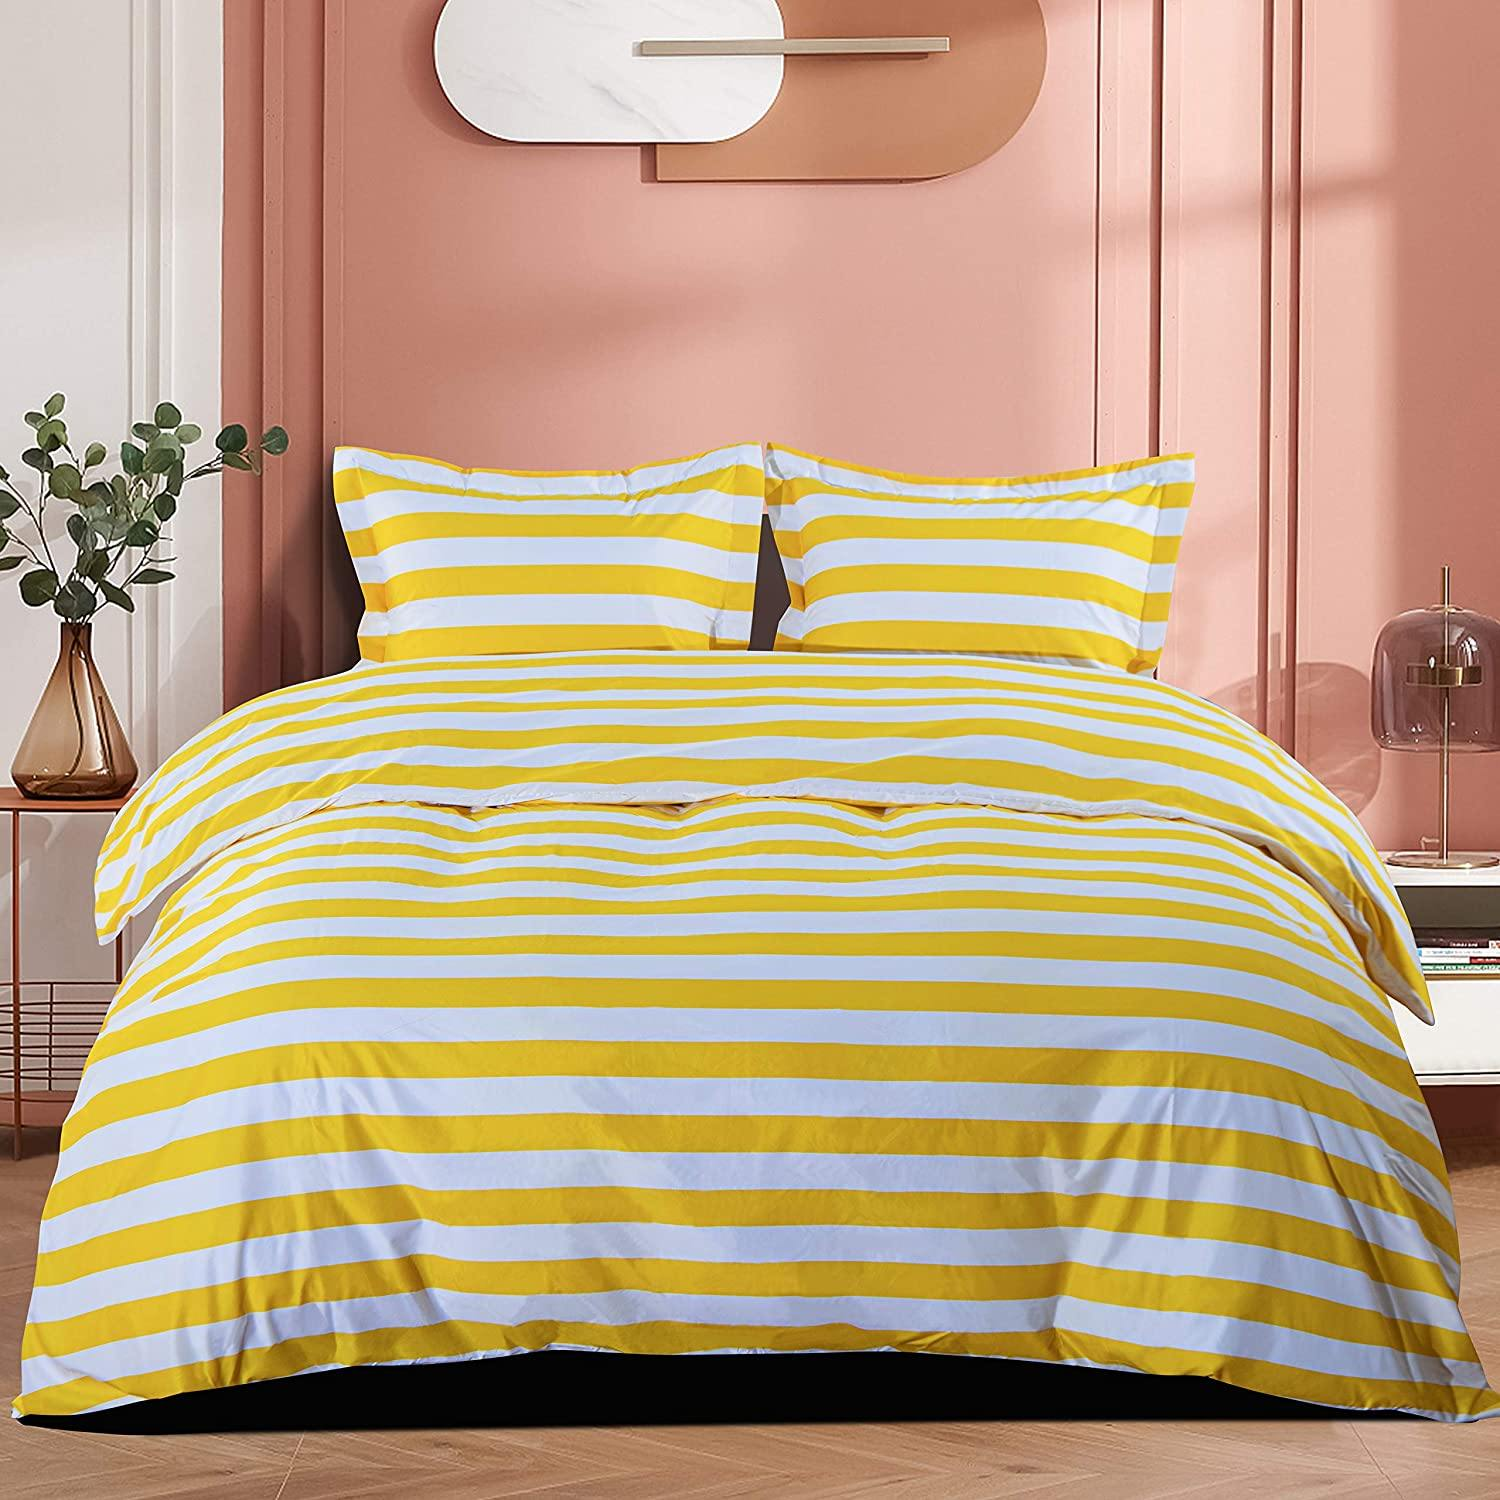 NTBAY Yellow and White Striped 3 Pieces Microfiber Queen Duvet Cover Set